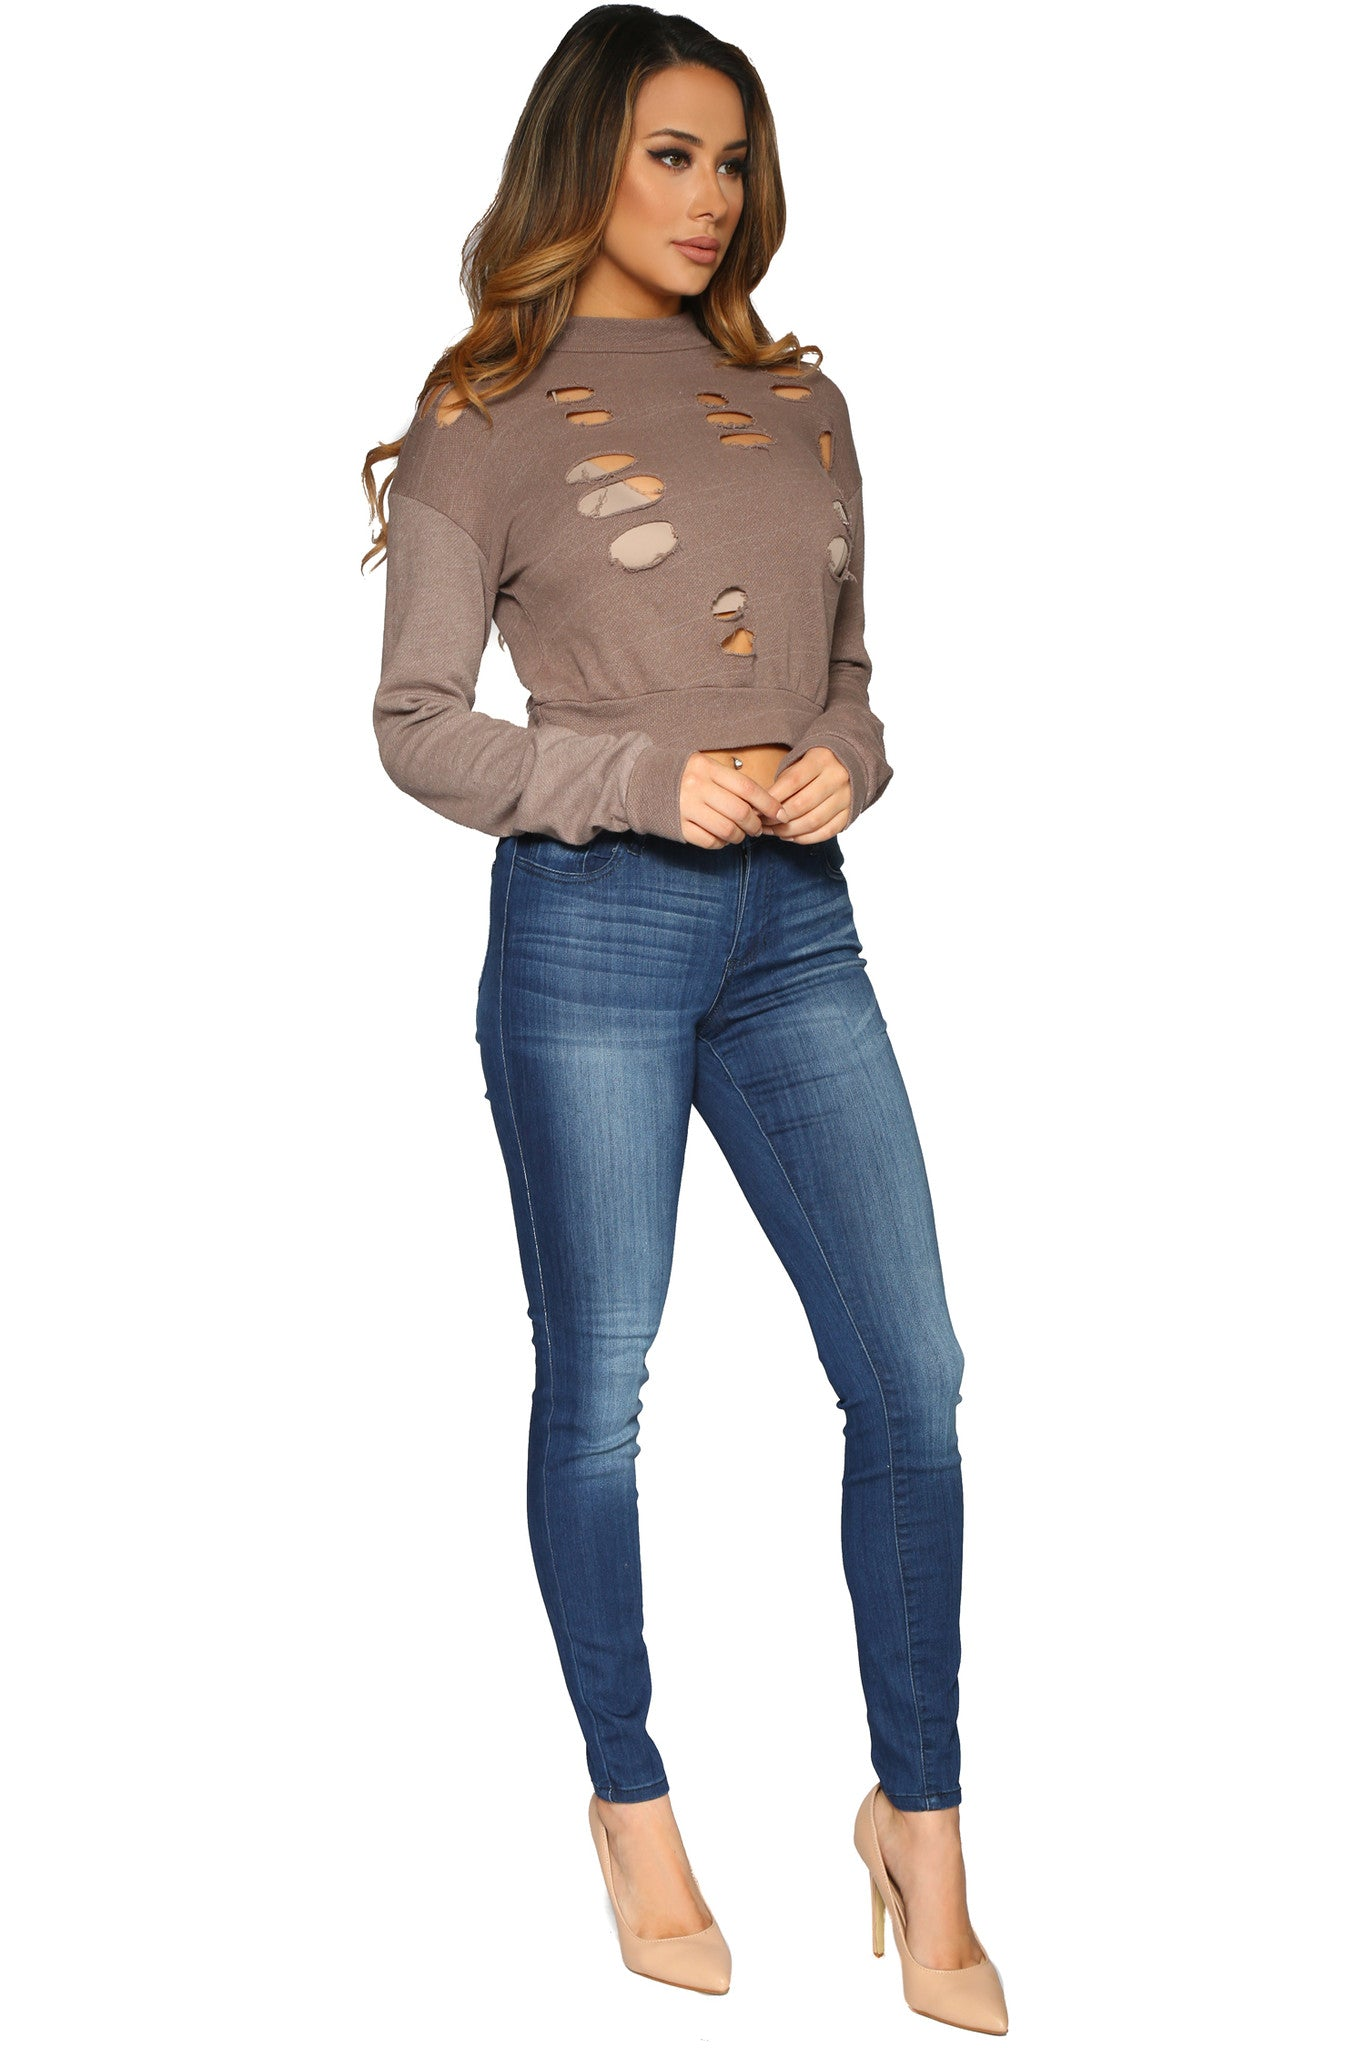 DESIE CROP SWEATER MOCHA GLAM ENVY SIDE PROFILE